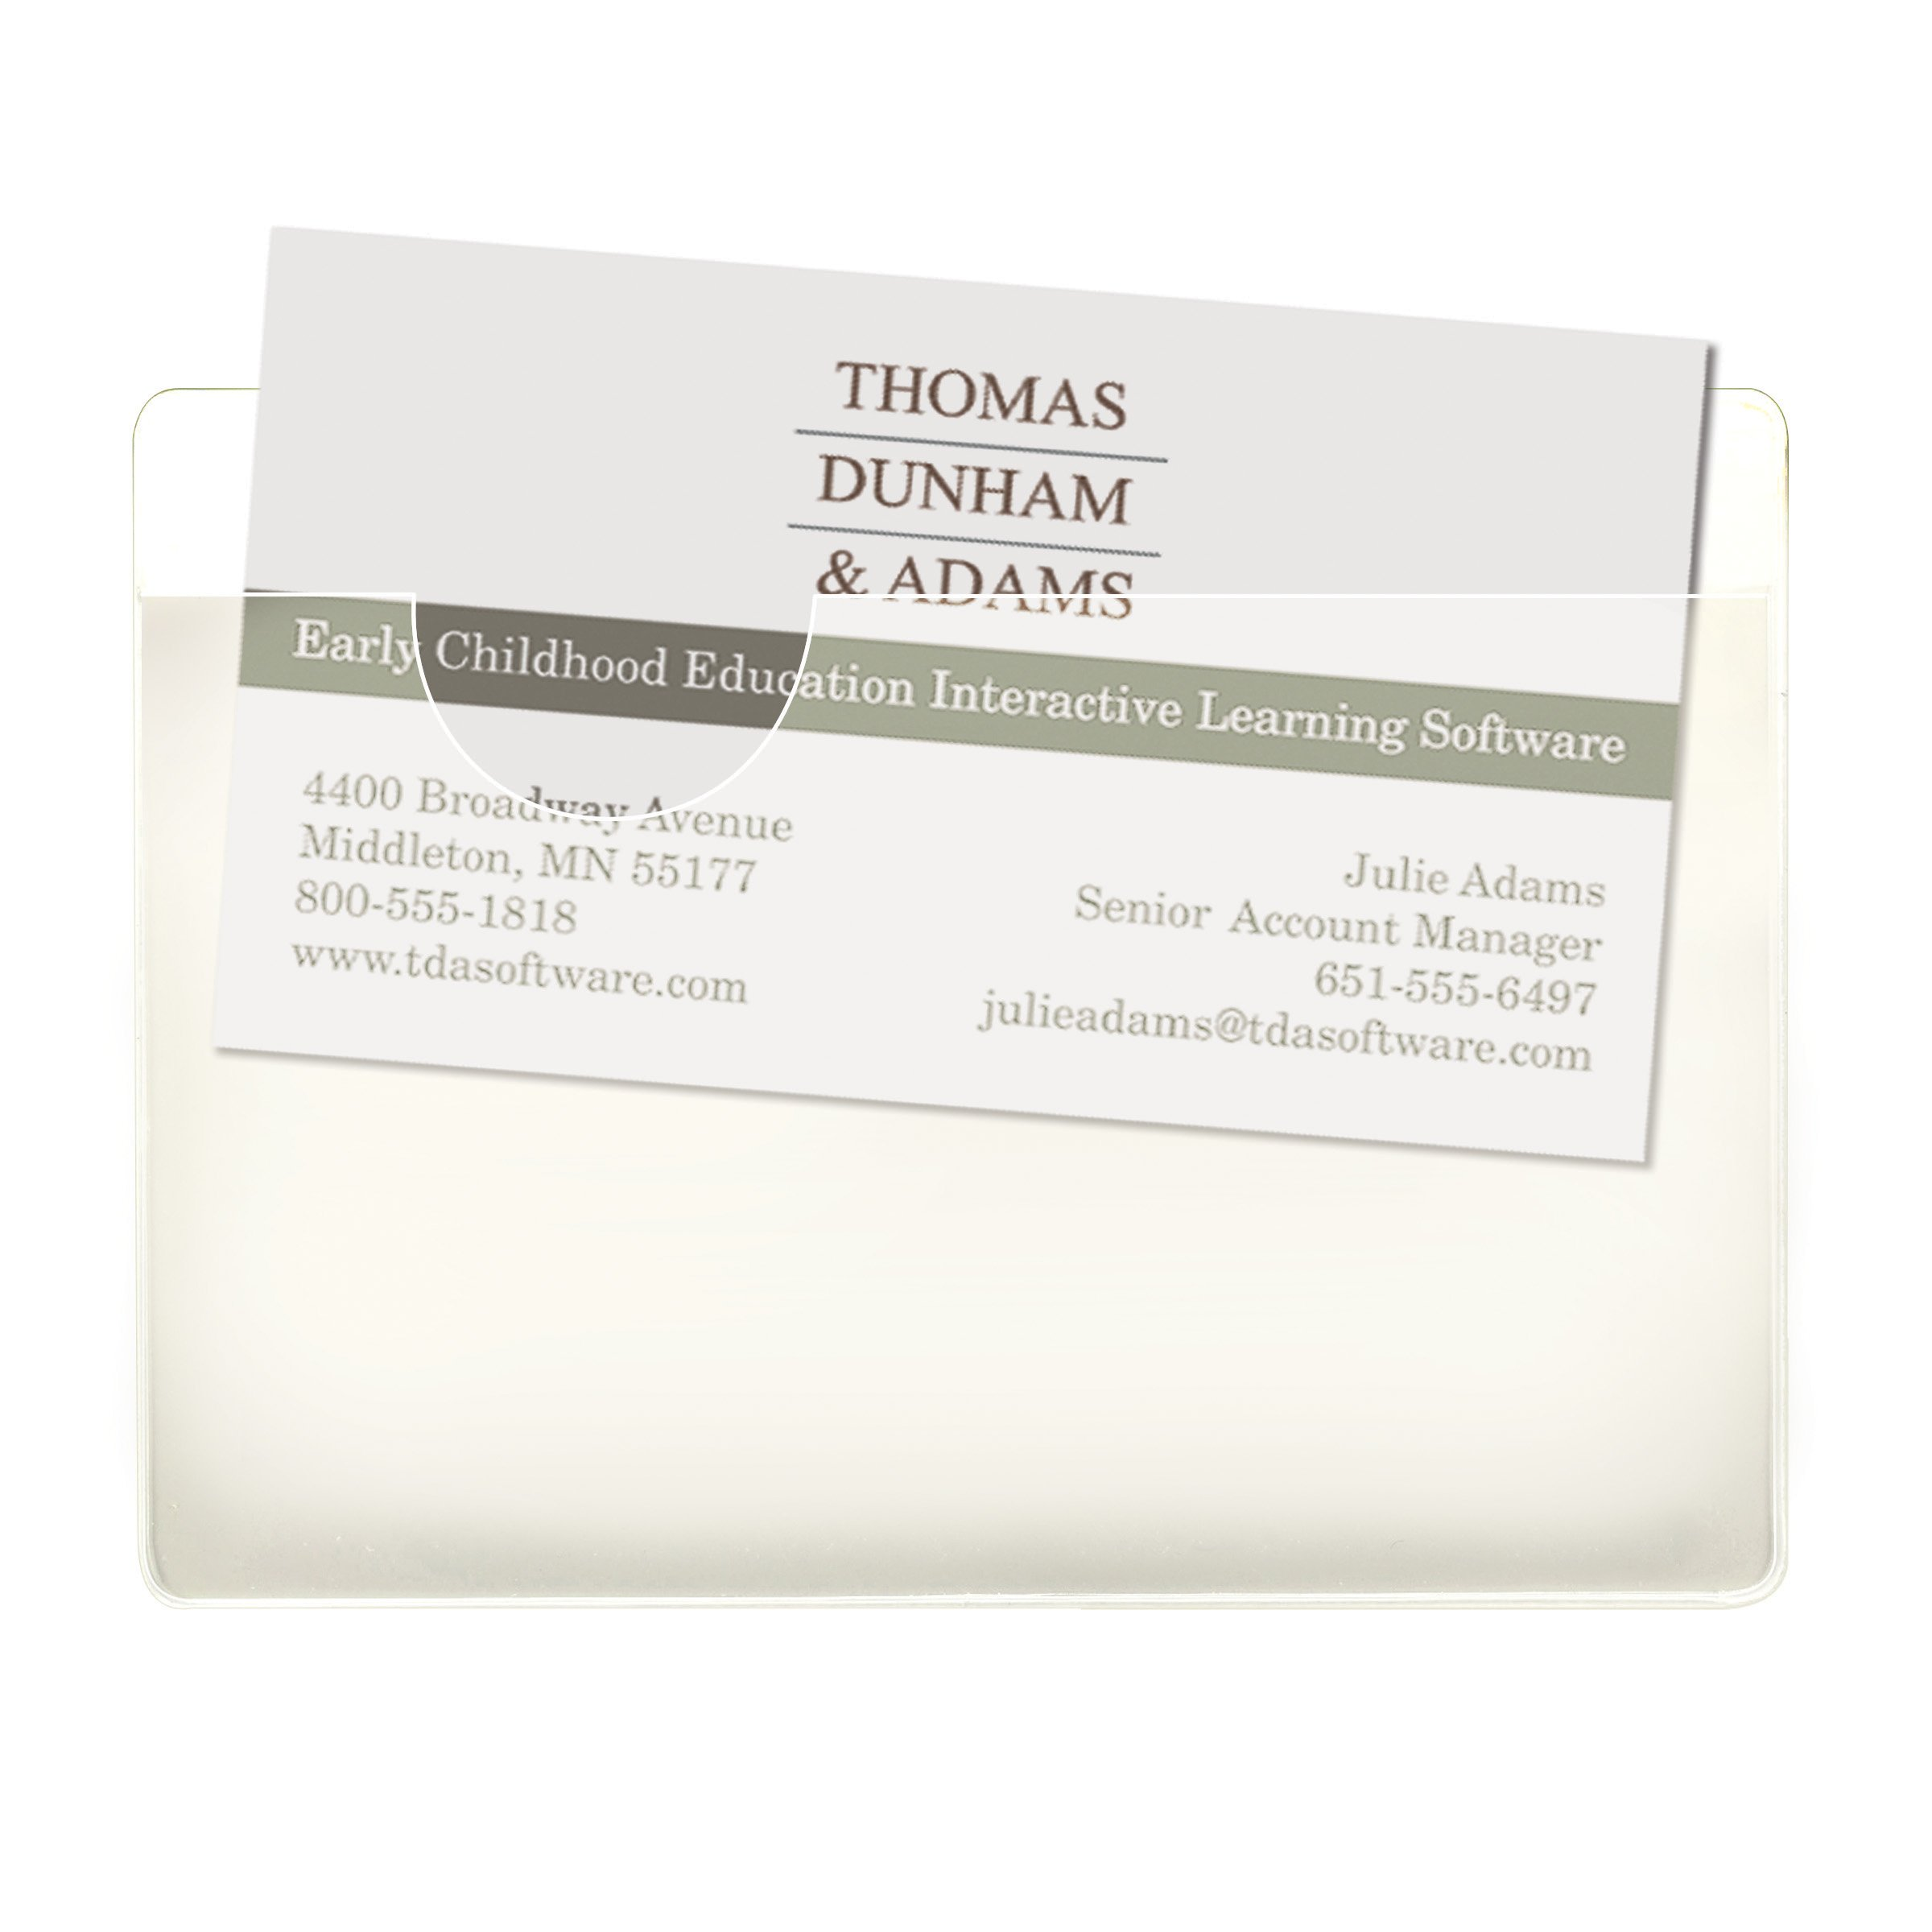 Smead Self-Adhesive Poly Pockets, Business Card Size (4-1/16''W x 3''H), Clear, 100 per Box (68123)